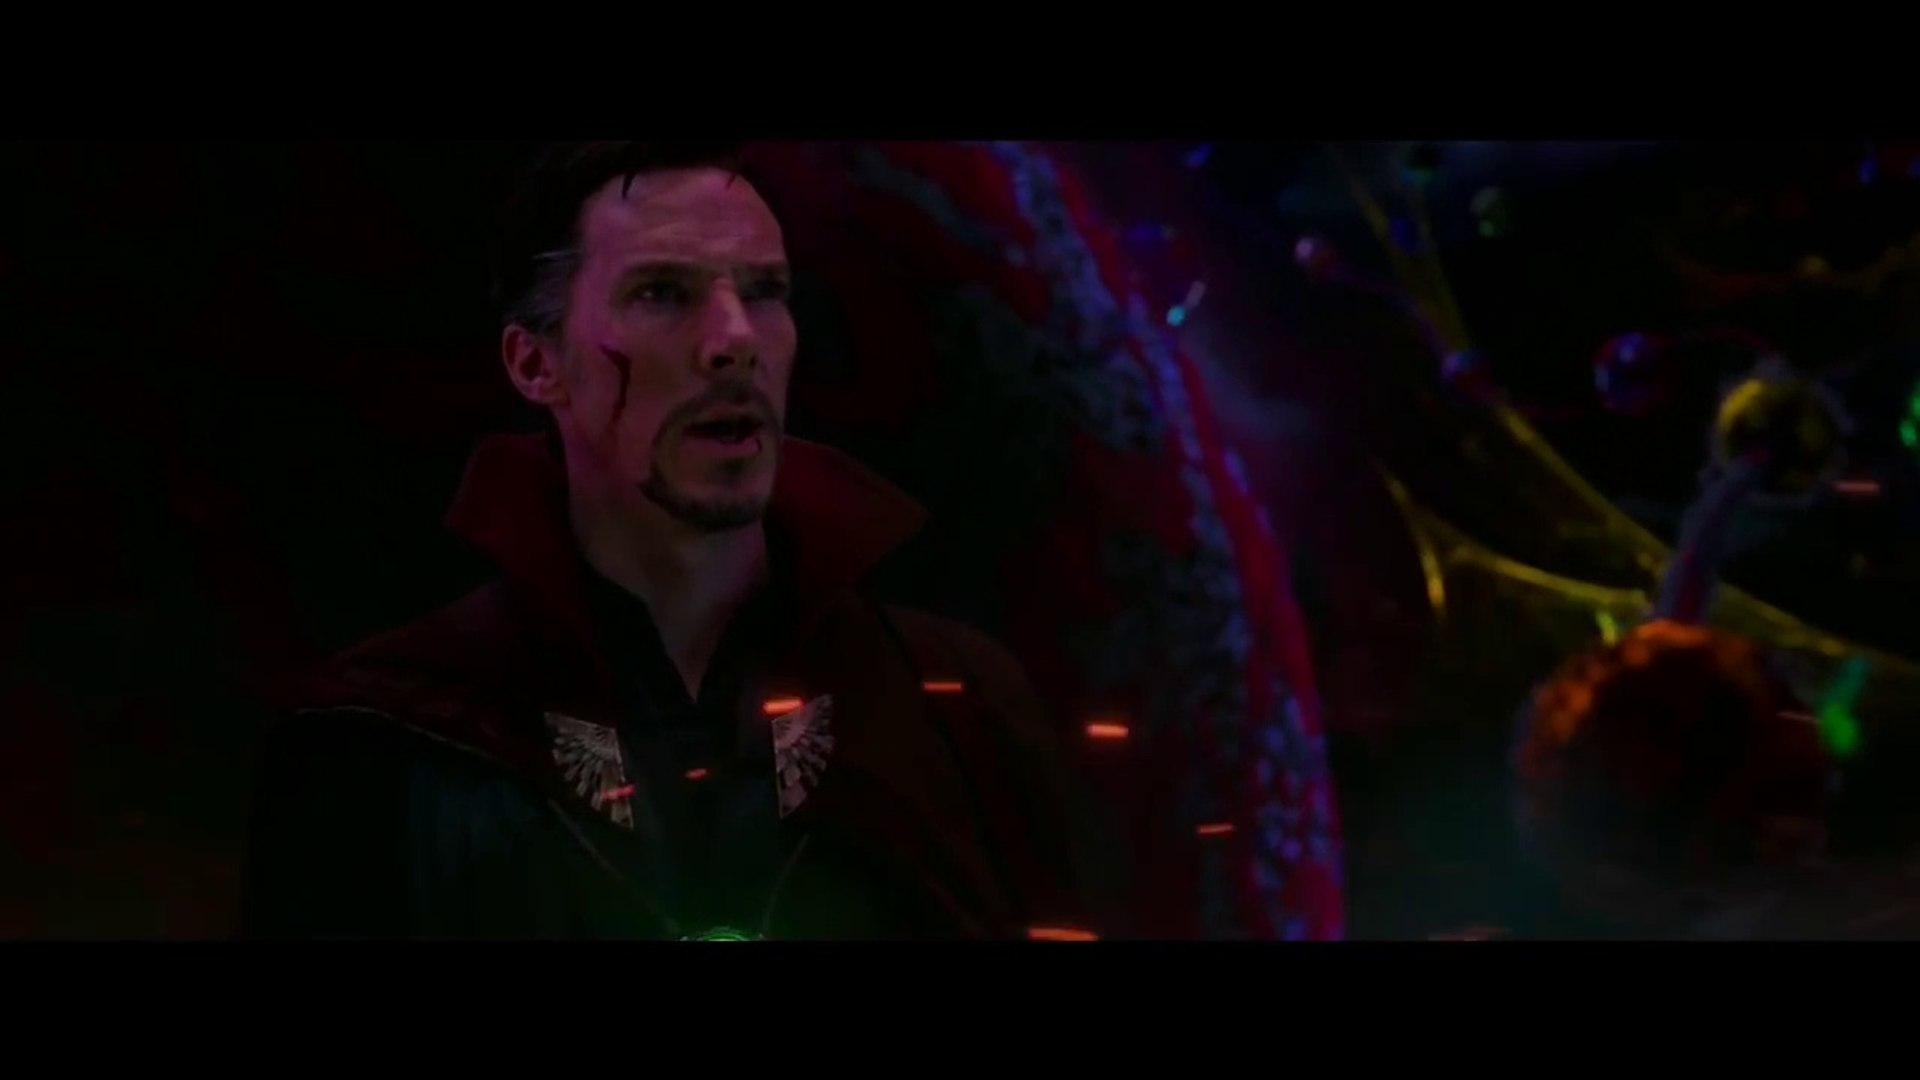 Doctor Strange All Best Scenes And Fight Scenes